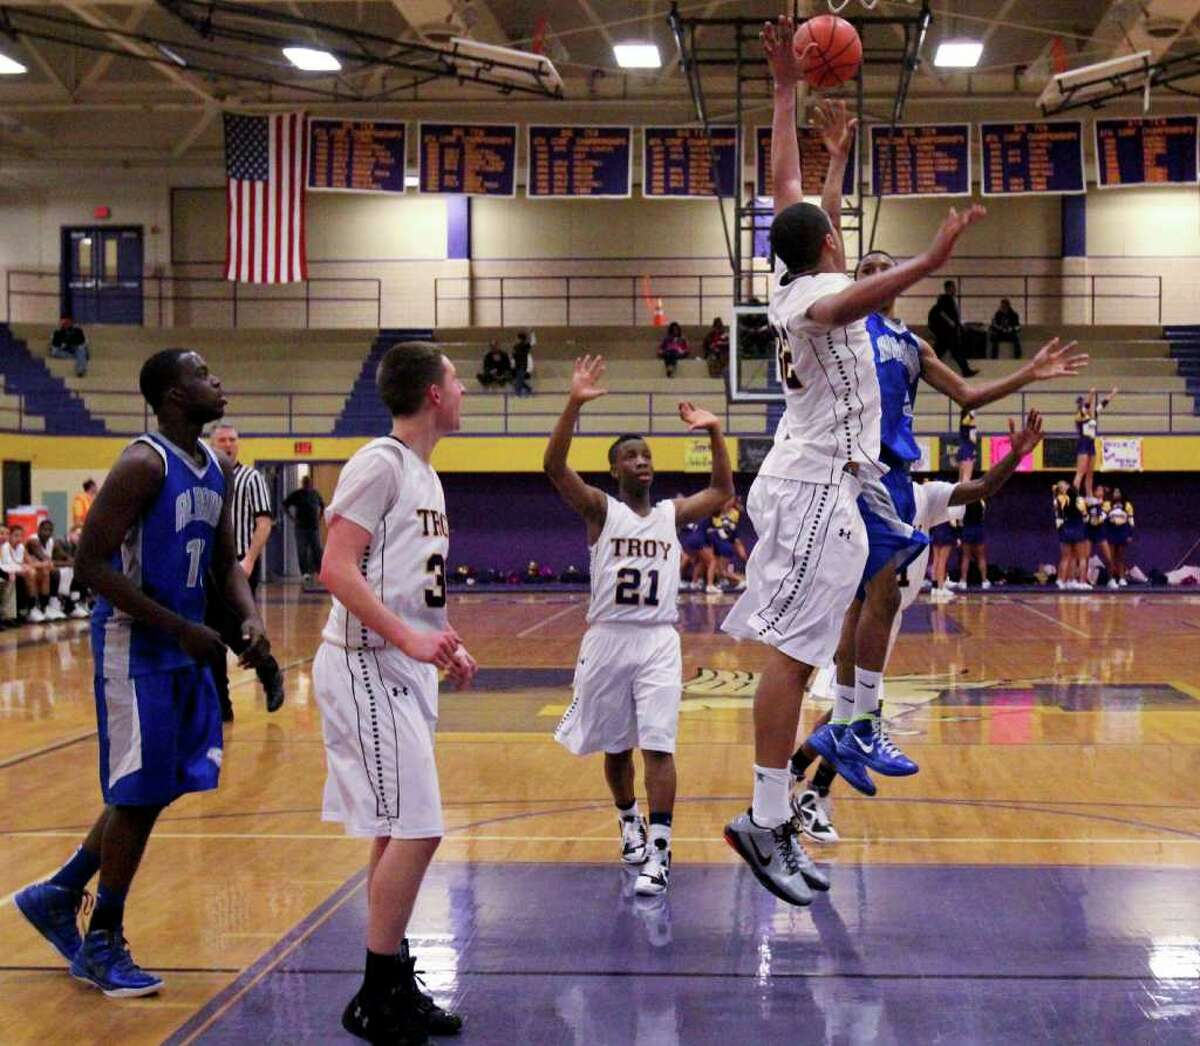 Javion Ogunyemi, of Troy High School, center, tries to block the shot of Dan Brown, of Albany High School, center rear, at the Albany High School vs. Troy High School basketball game at Troy High on Tuesday, Feb. 14, 2012. (Erin Colligan / Special To The Times Union)